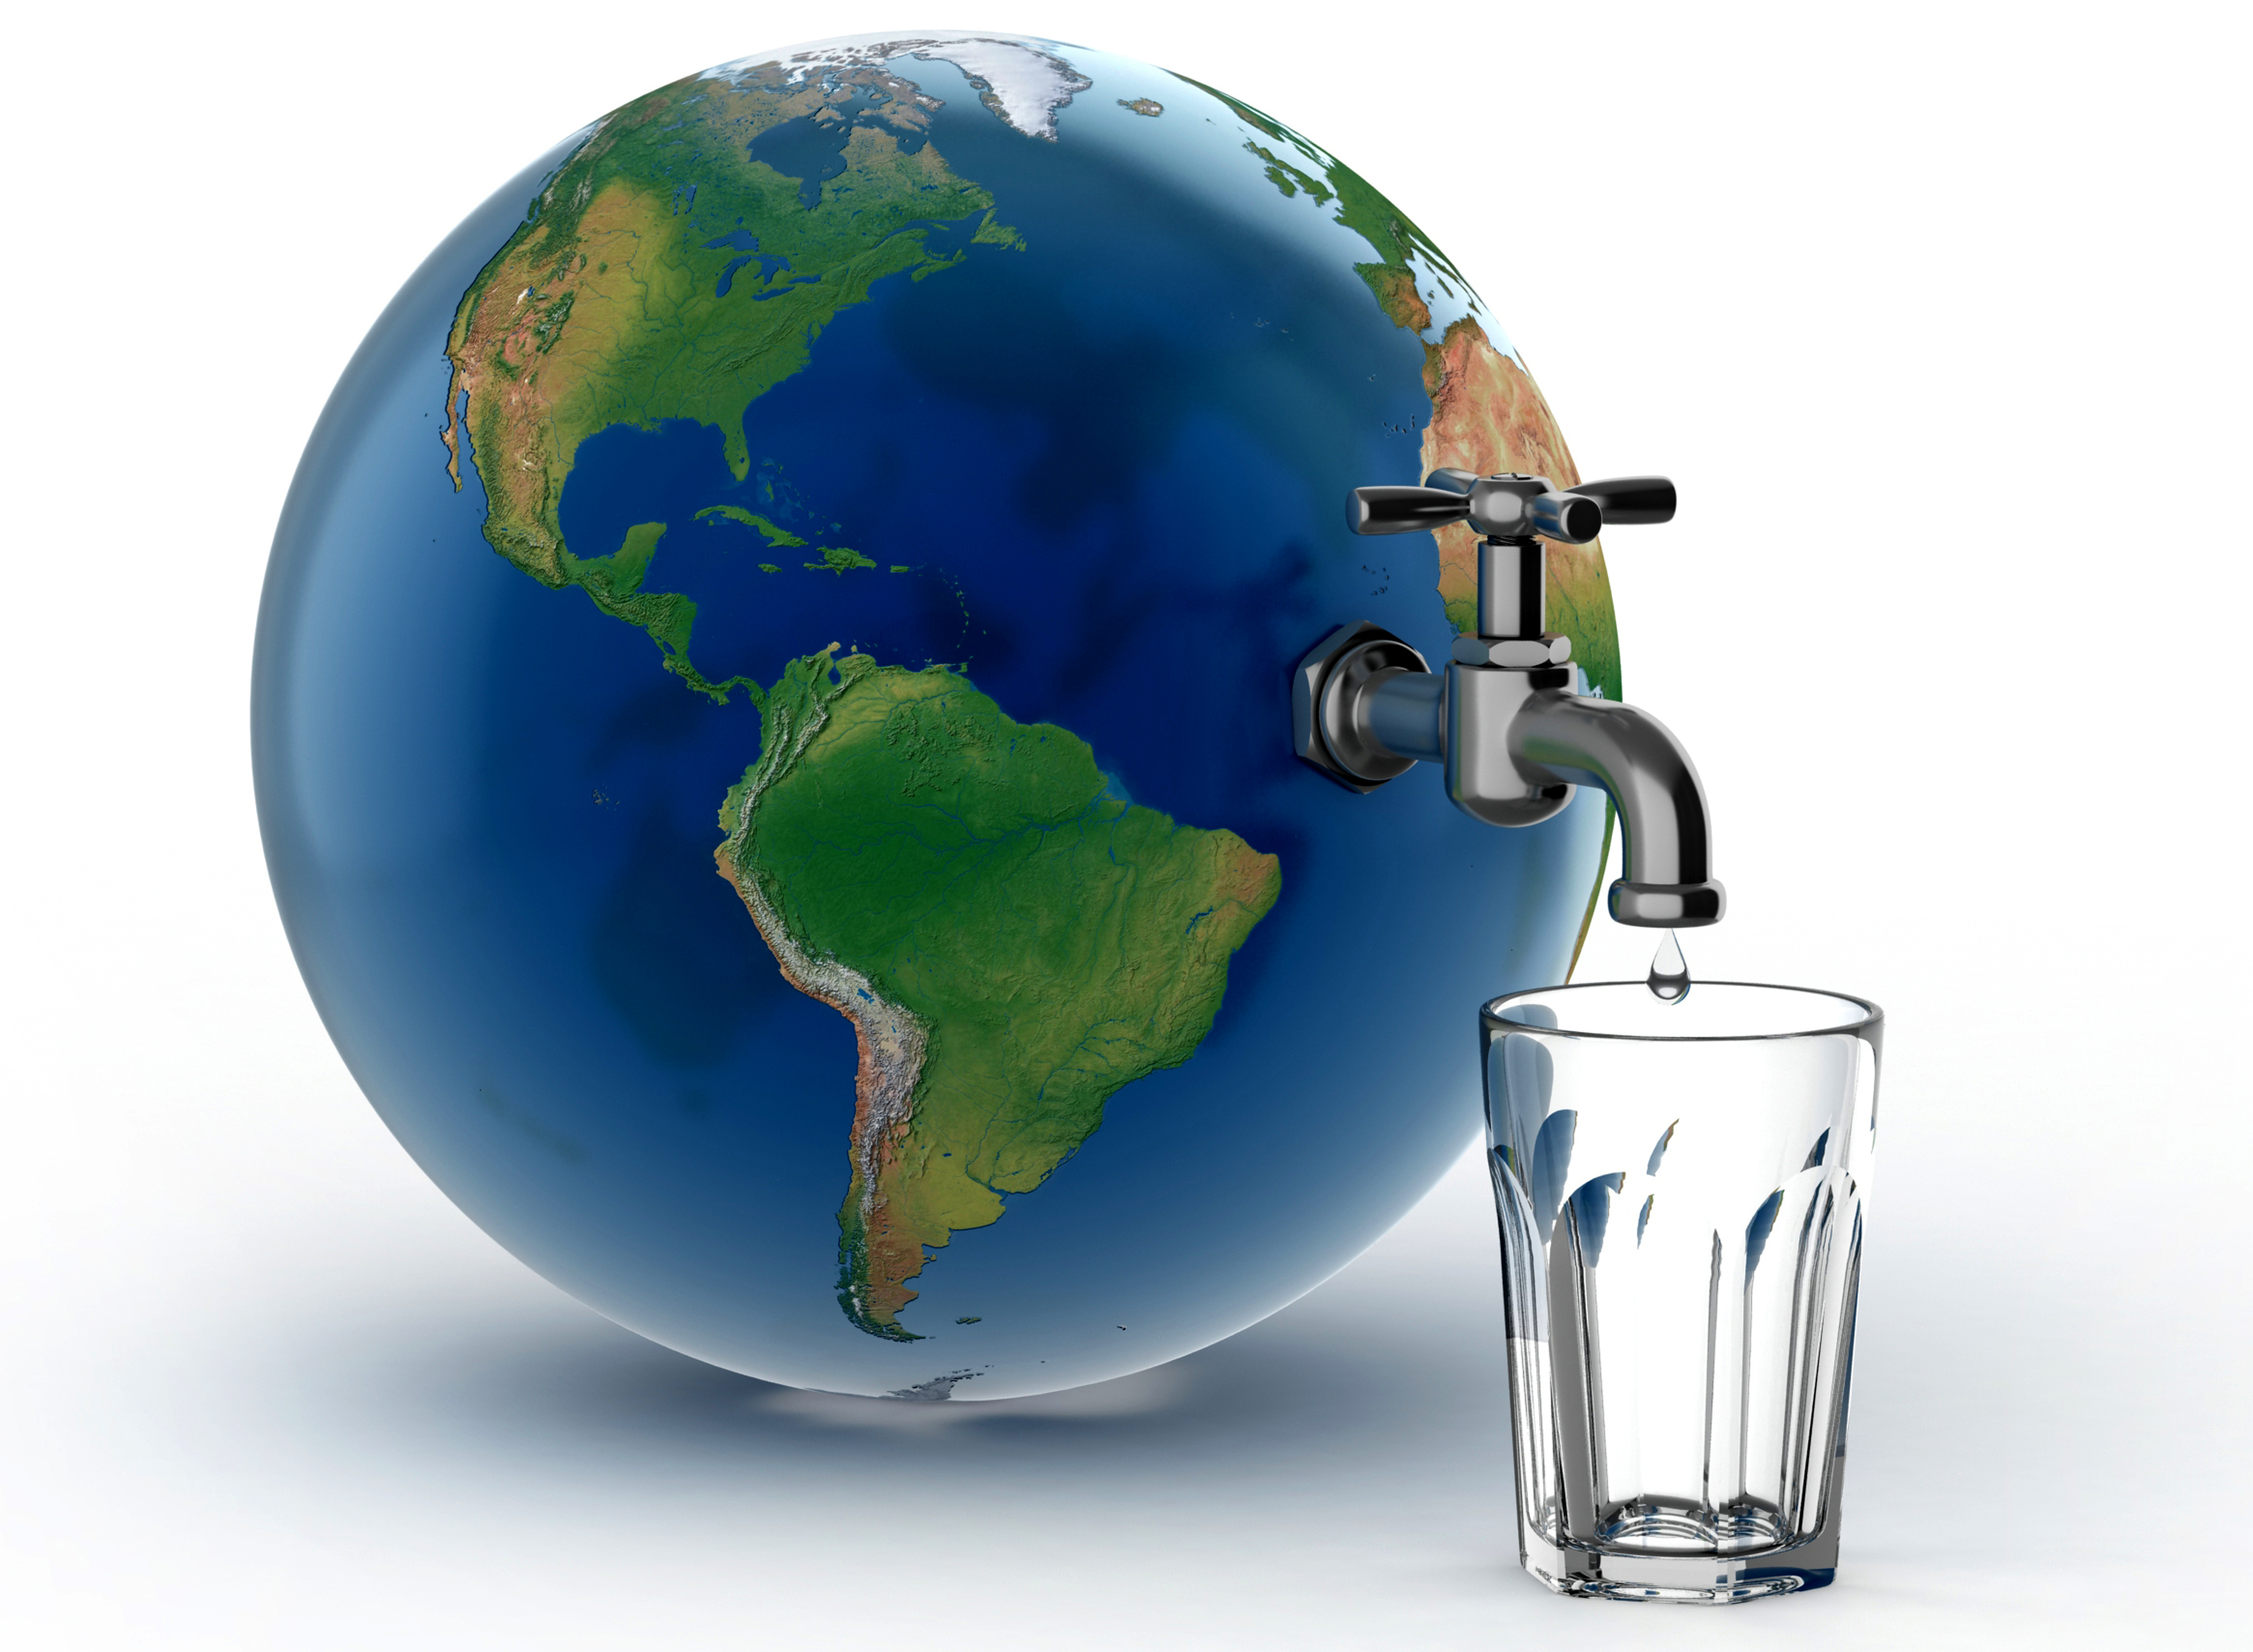 water resource issue in isokoland Today was a busy day for news outlets around the world it began with the sad passing of farrah fawcett the beautiful actress from charlie's angels, after a three-year battle with cancer.